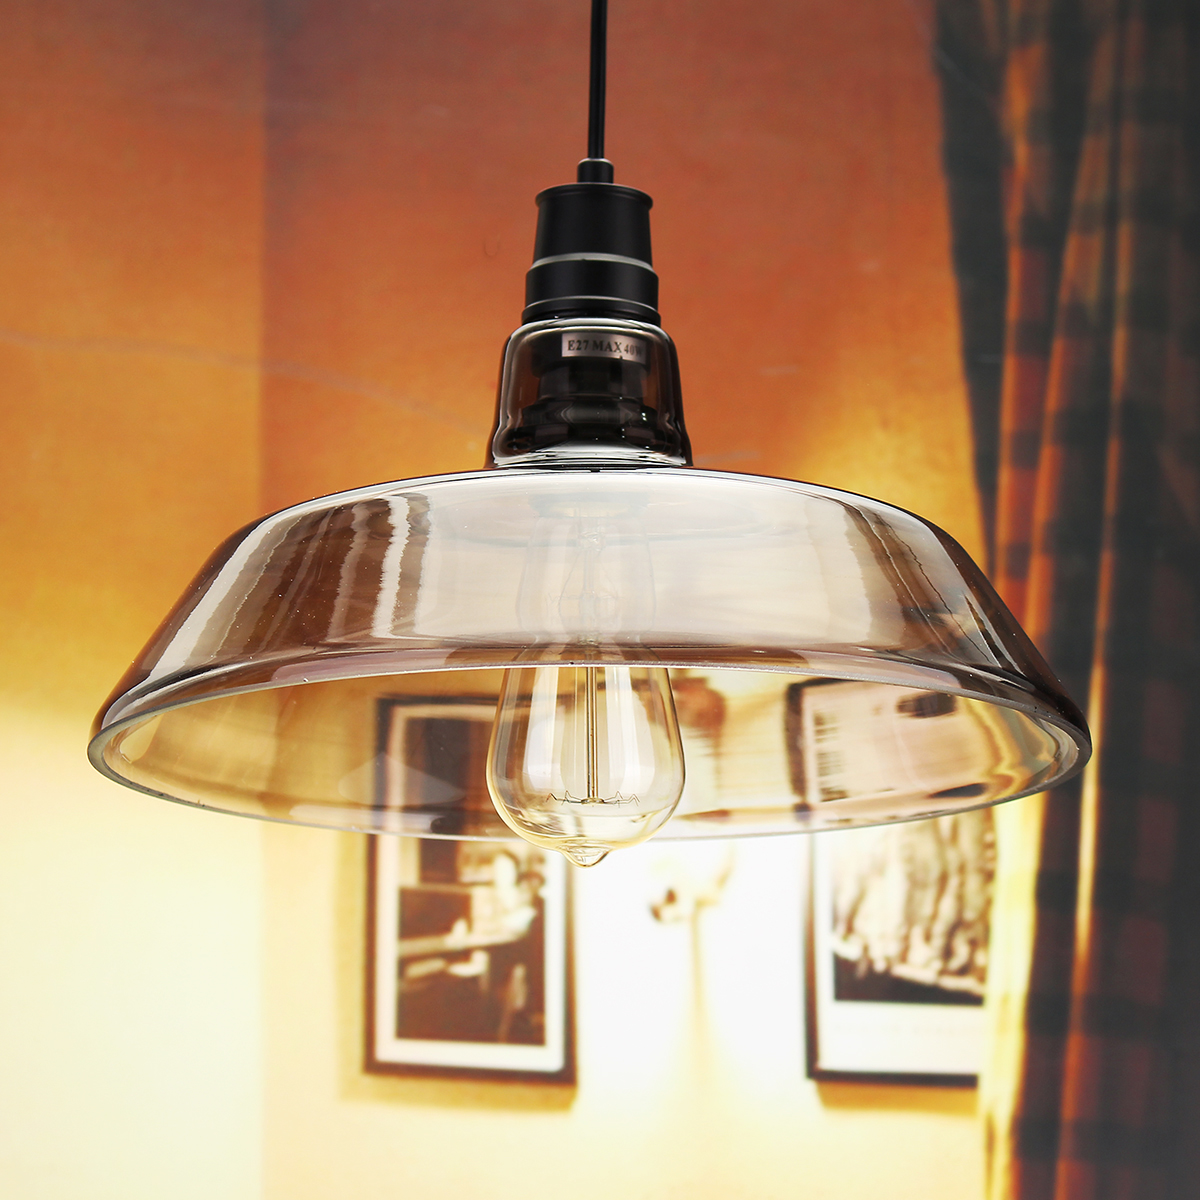 Ceiling lights edison : Industrial retro vintage pipe glass edison bulb pendent